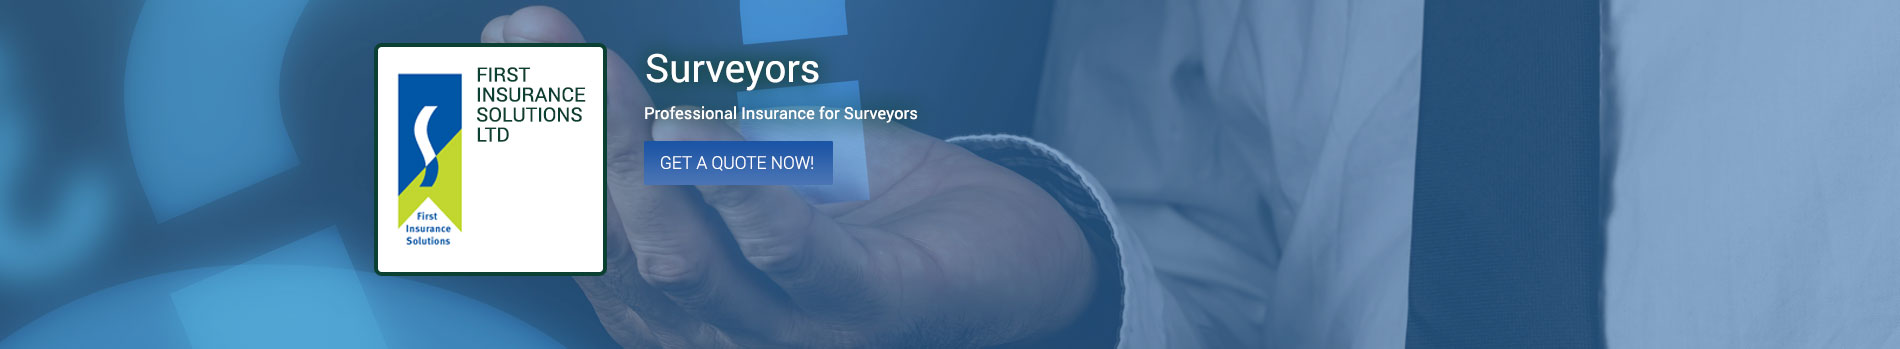 surveyors-banner